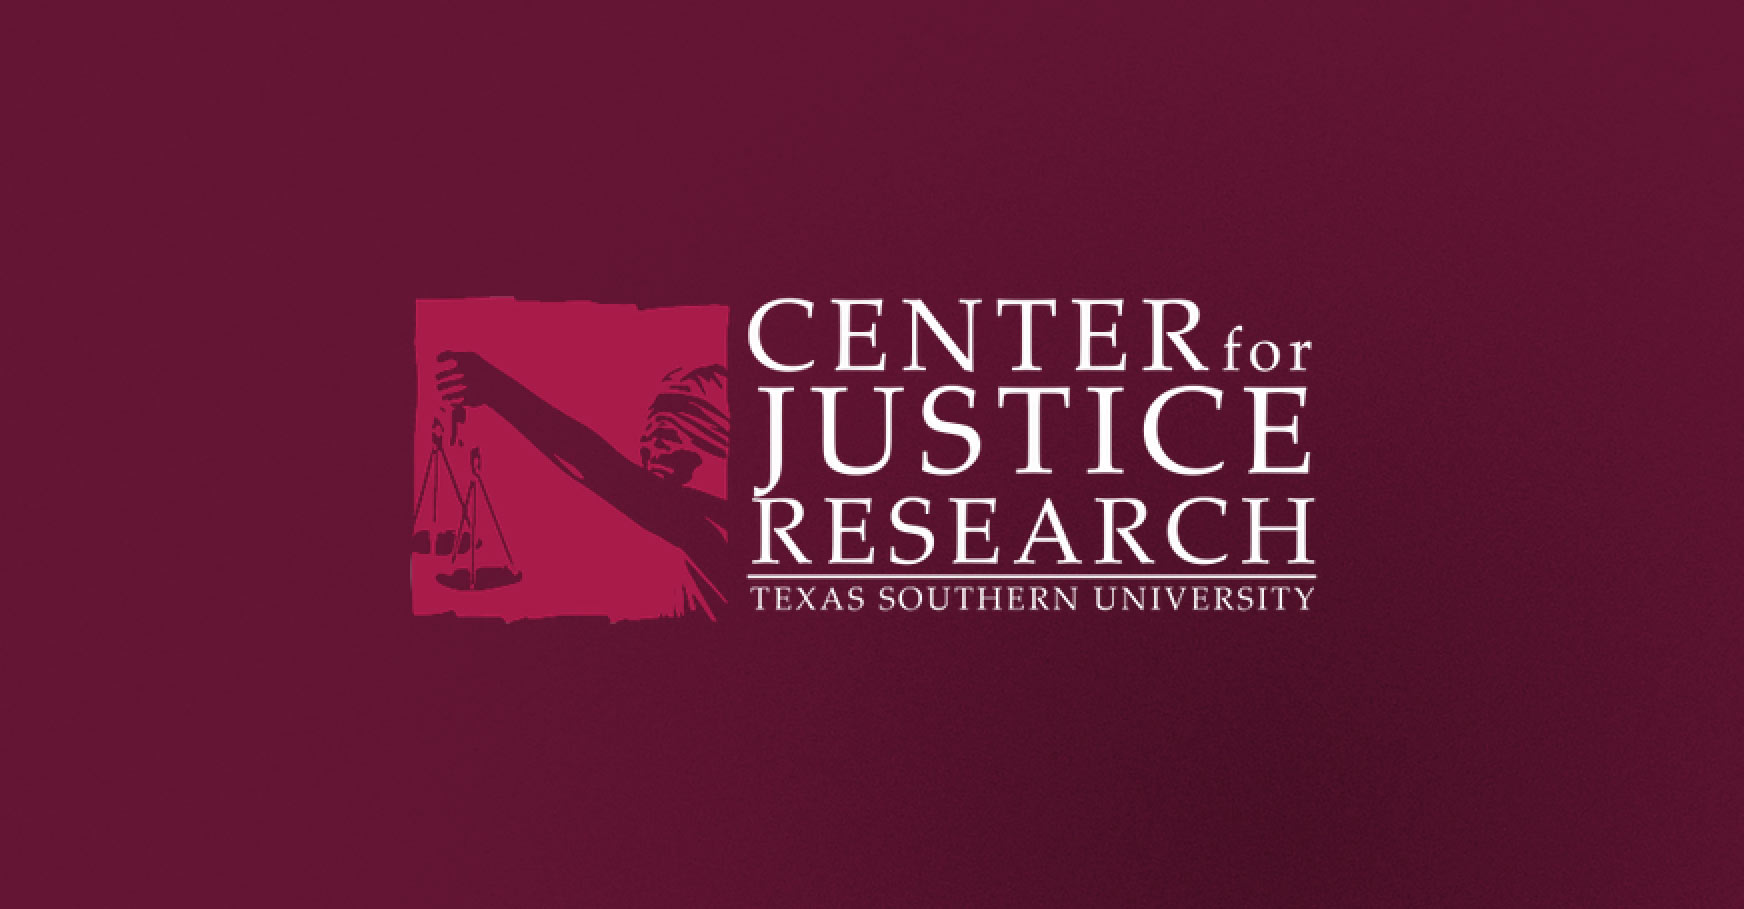 National Police Reform Advisory Group | Center for Justice Research